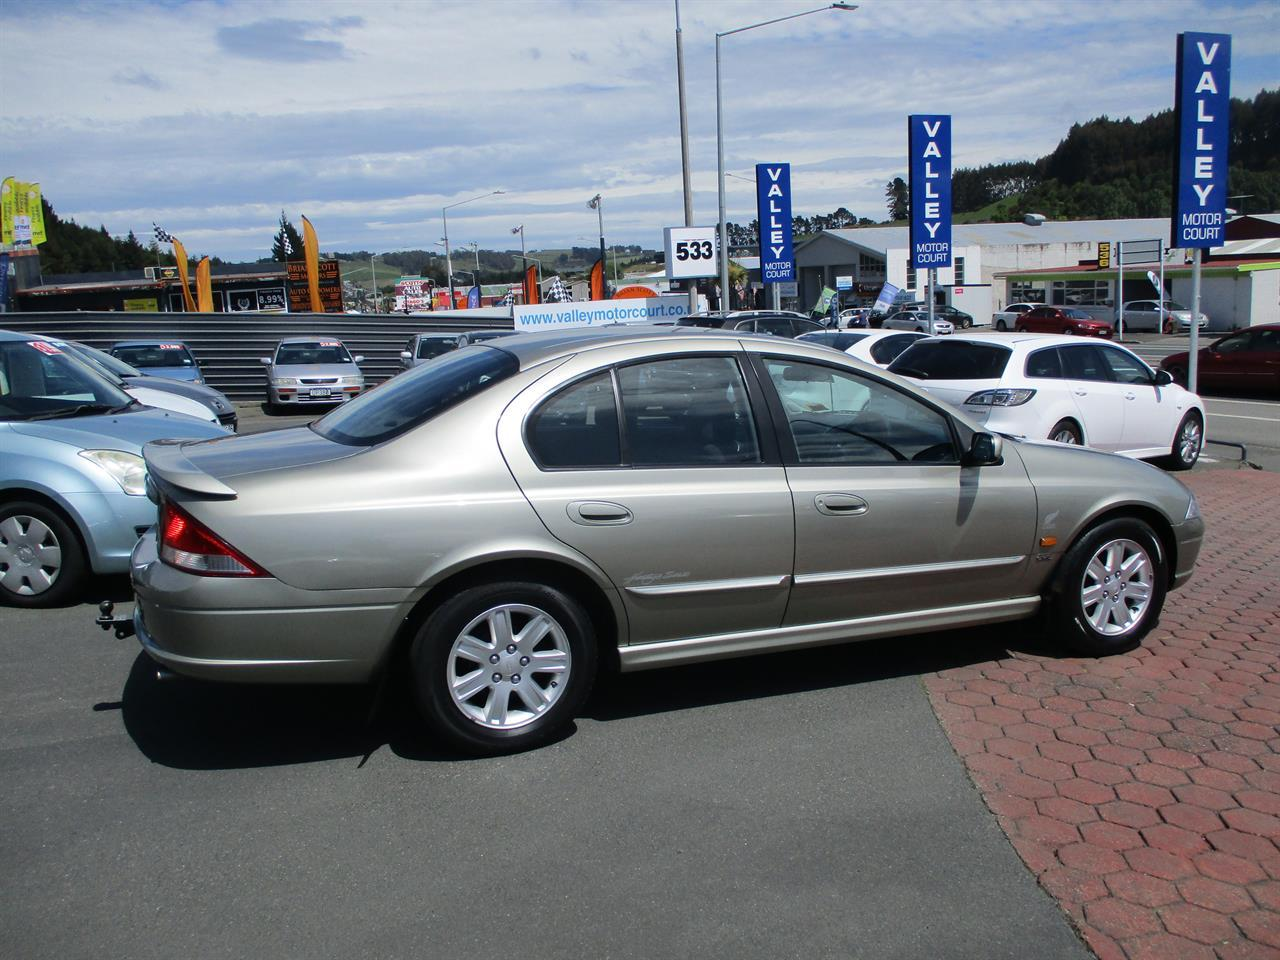 image-3, 2001 Ford Falcon AUII HERITAGE SERIES at Dunedin